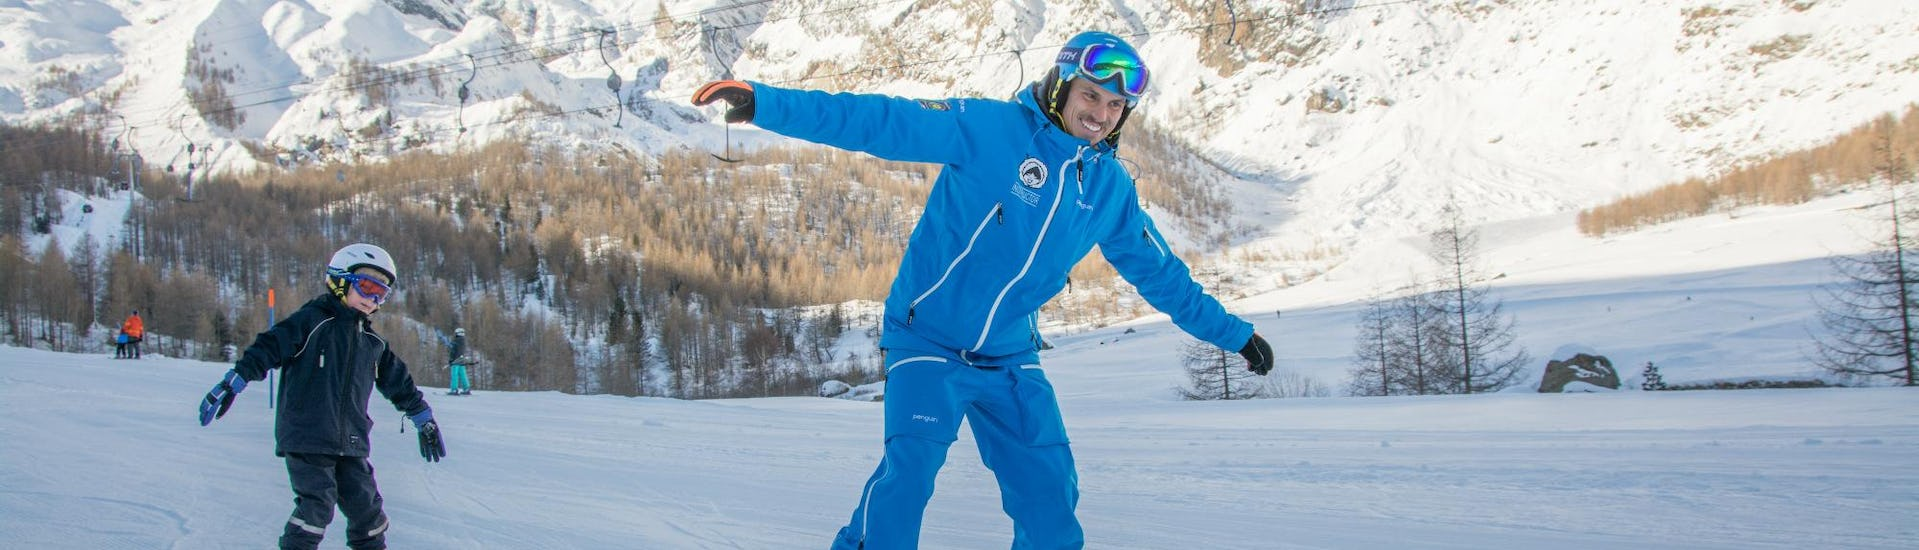 Ski Instructor Private for Kids – All Levels